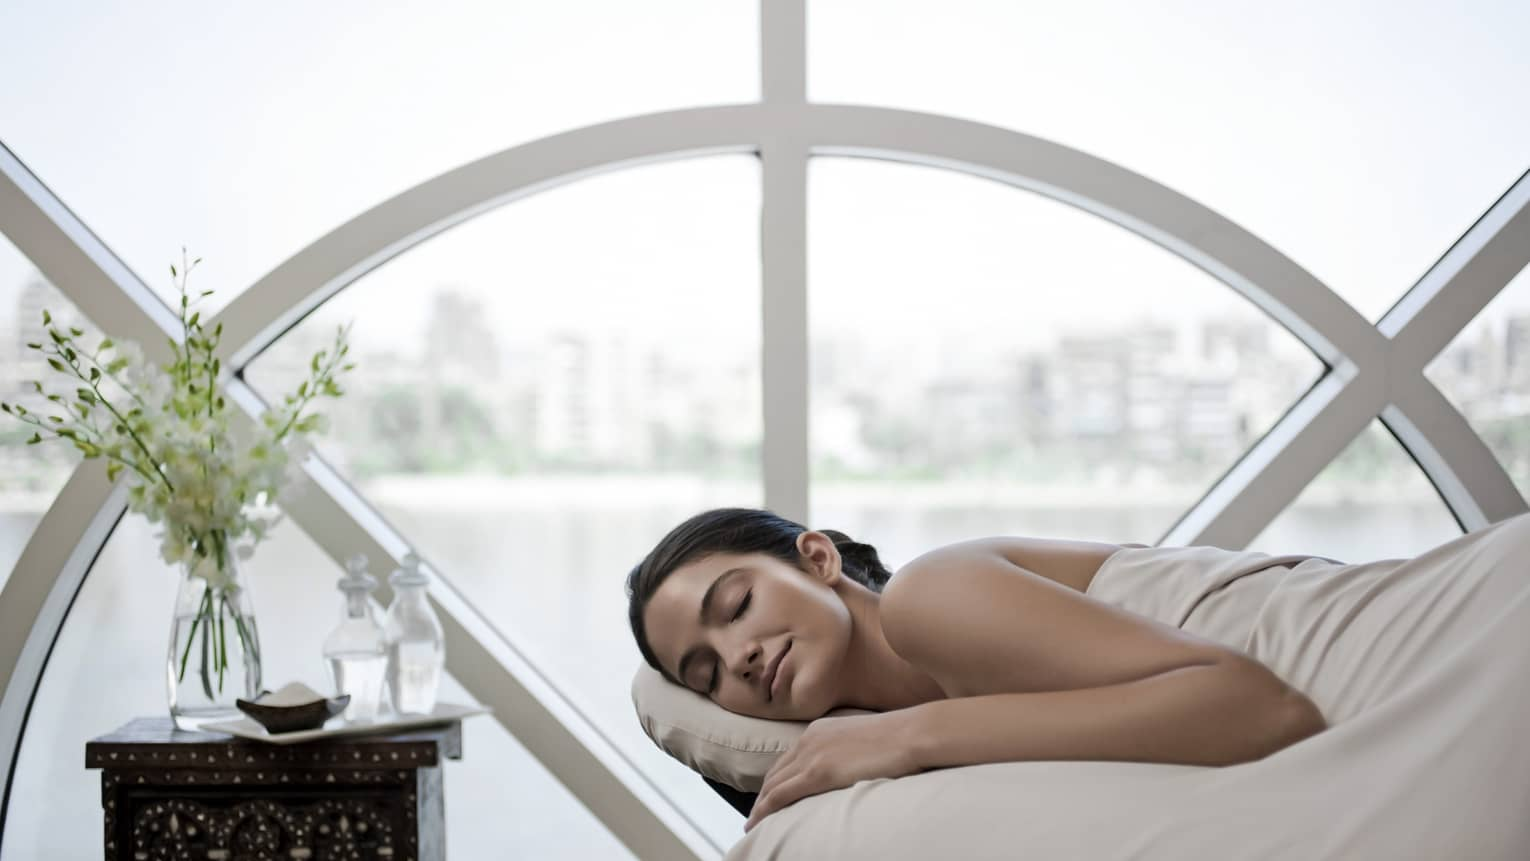 Woman with eyes closed, smile lies on massage bed in spa suite under white sheet in front of large sunny window